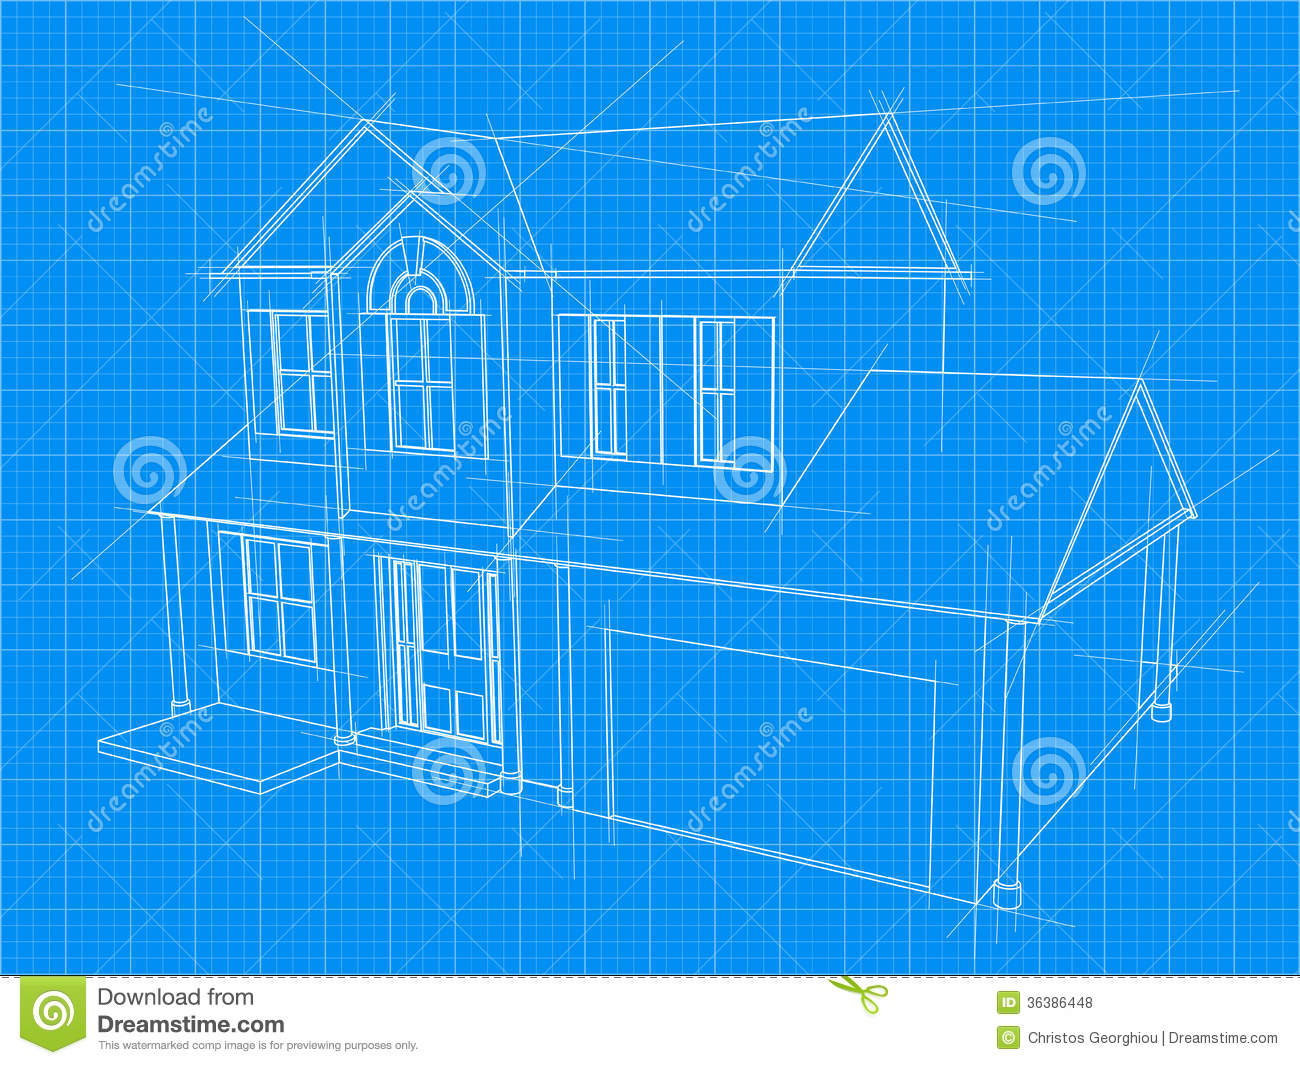 House blueprint royalty free stock photos image 36386448 for Blueprint for houses free